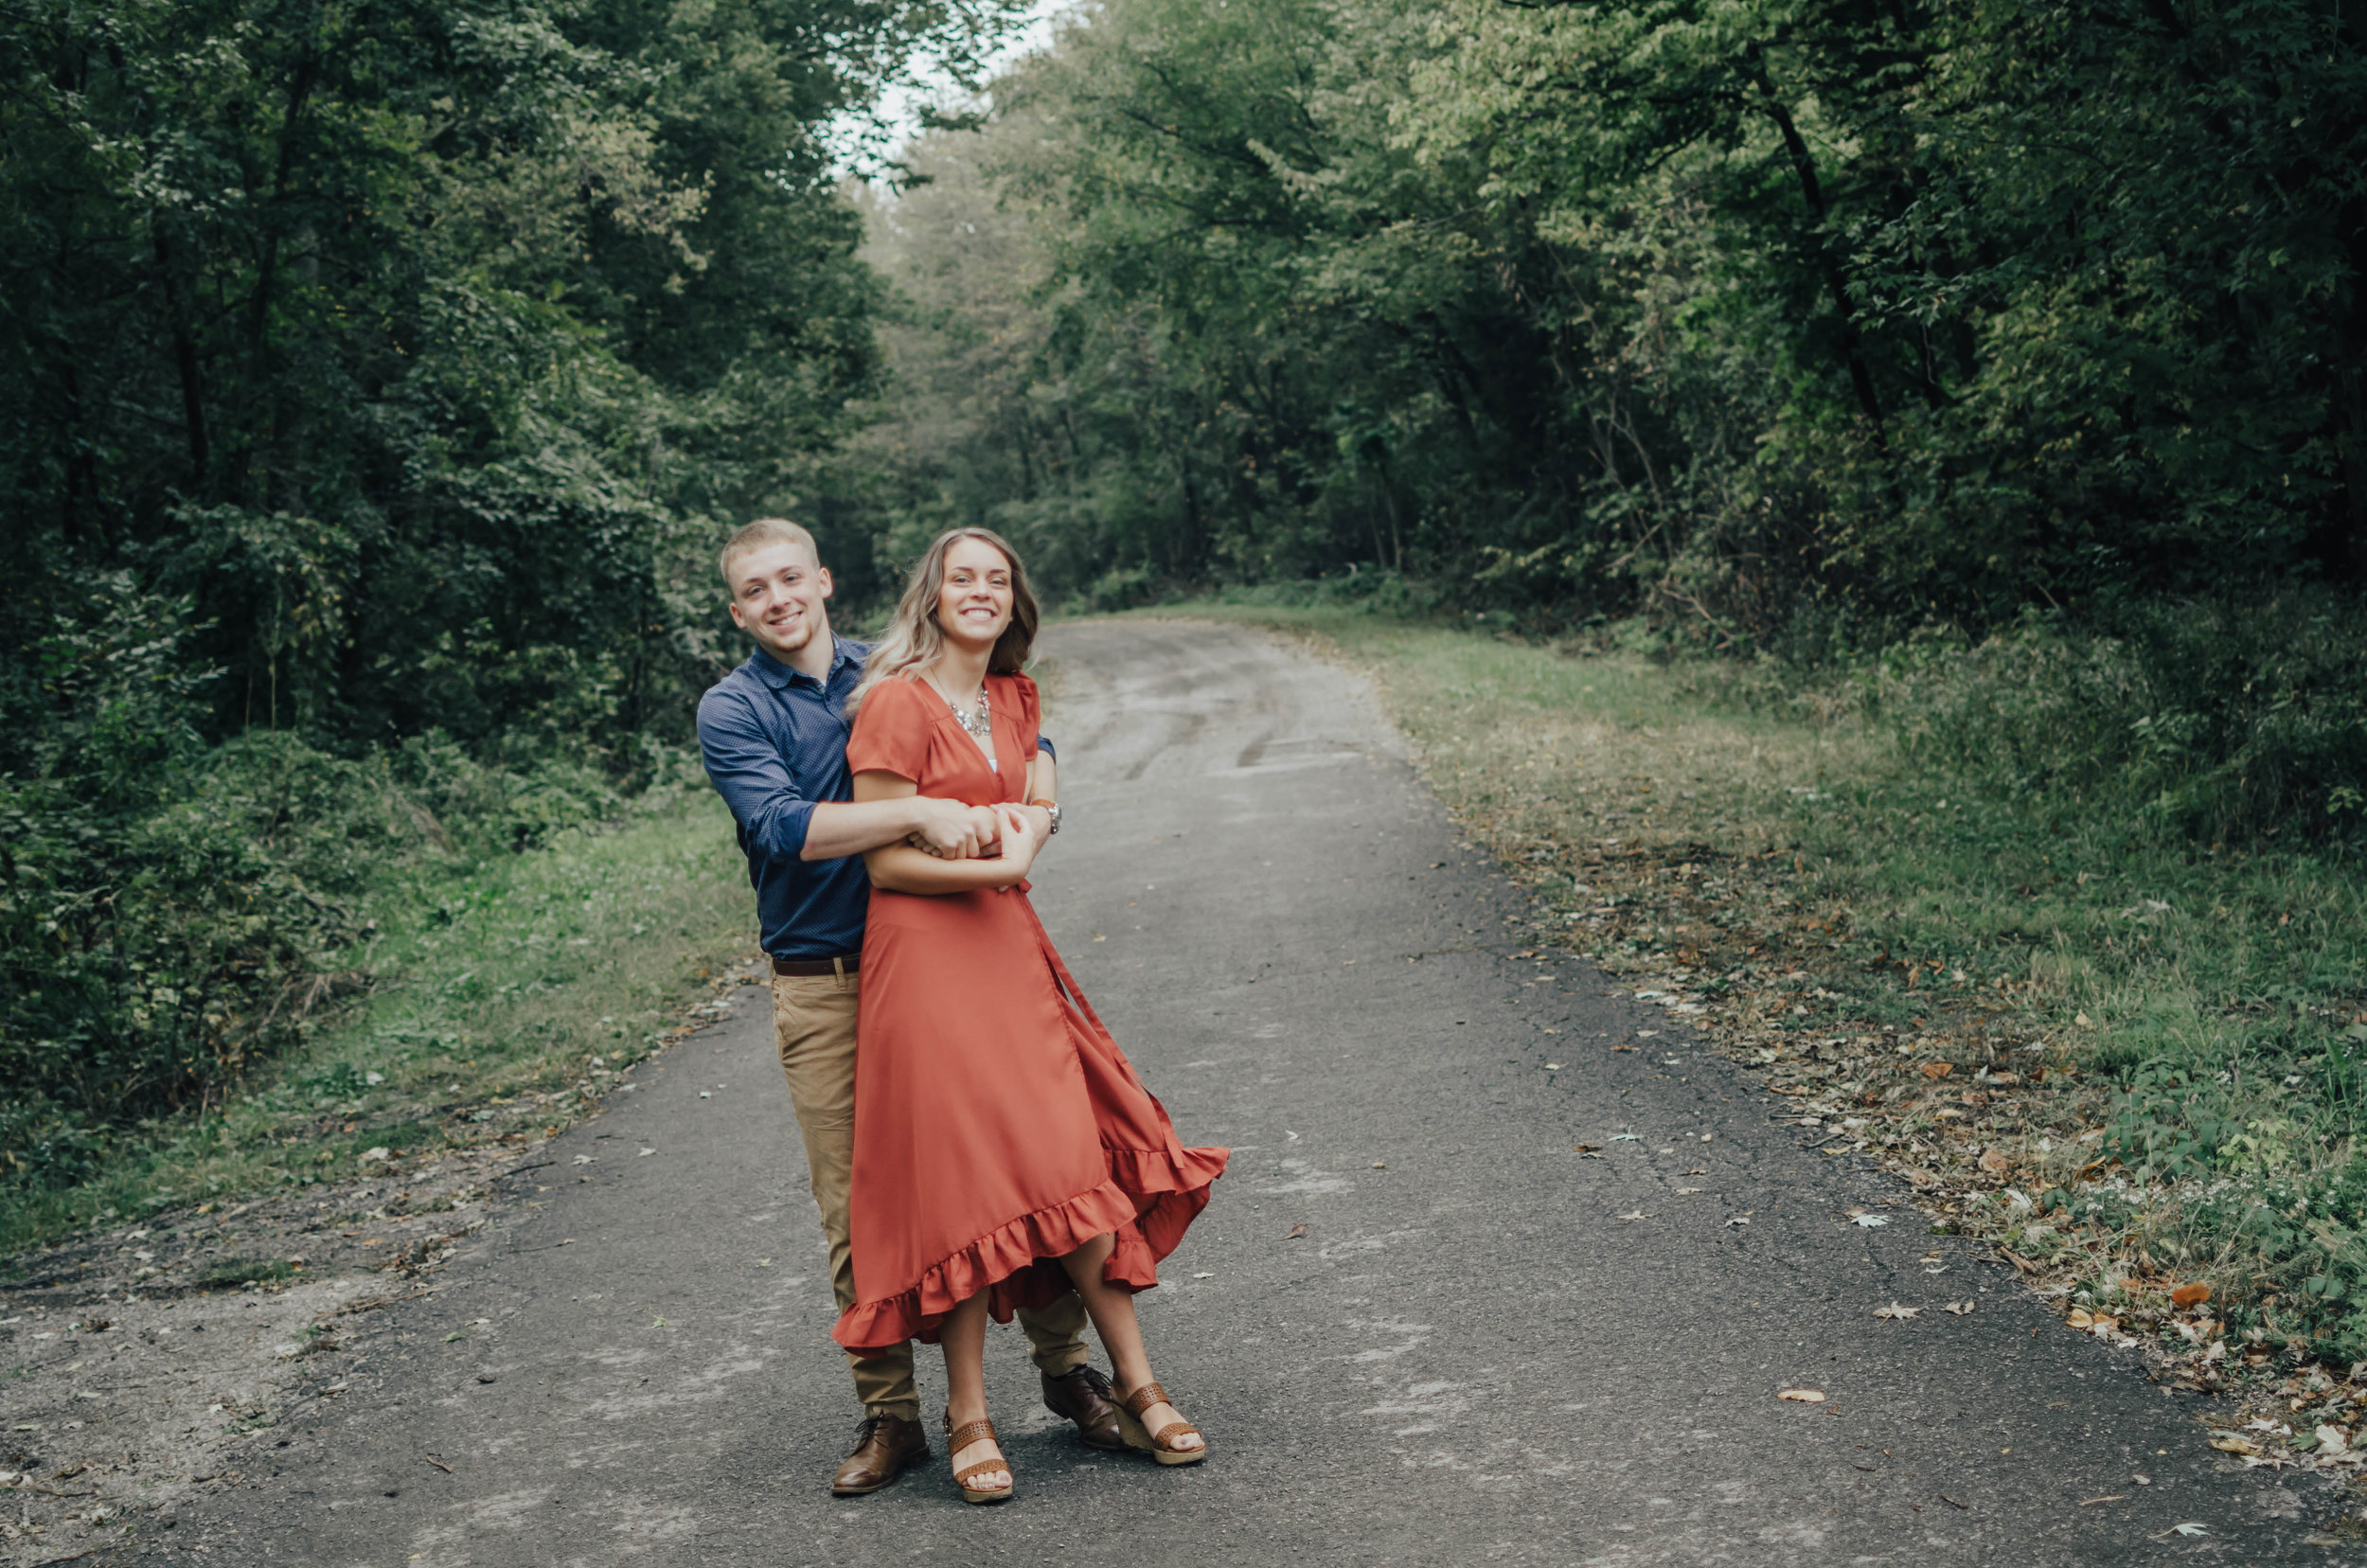 """Bright & fun! - """"You were very calm and laid back. Something I need in my photographer on my stressful wedding day! Keep doing what you're doing!""""- Cady & Blake"""